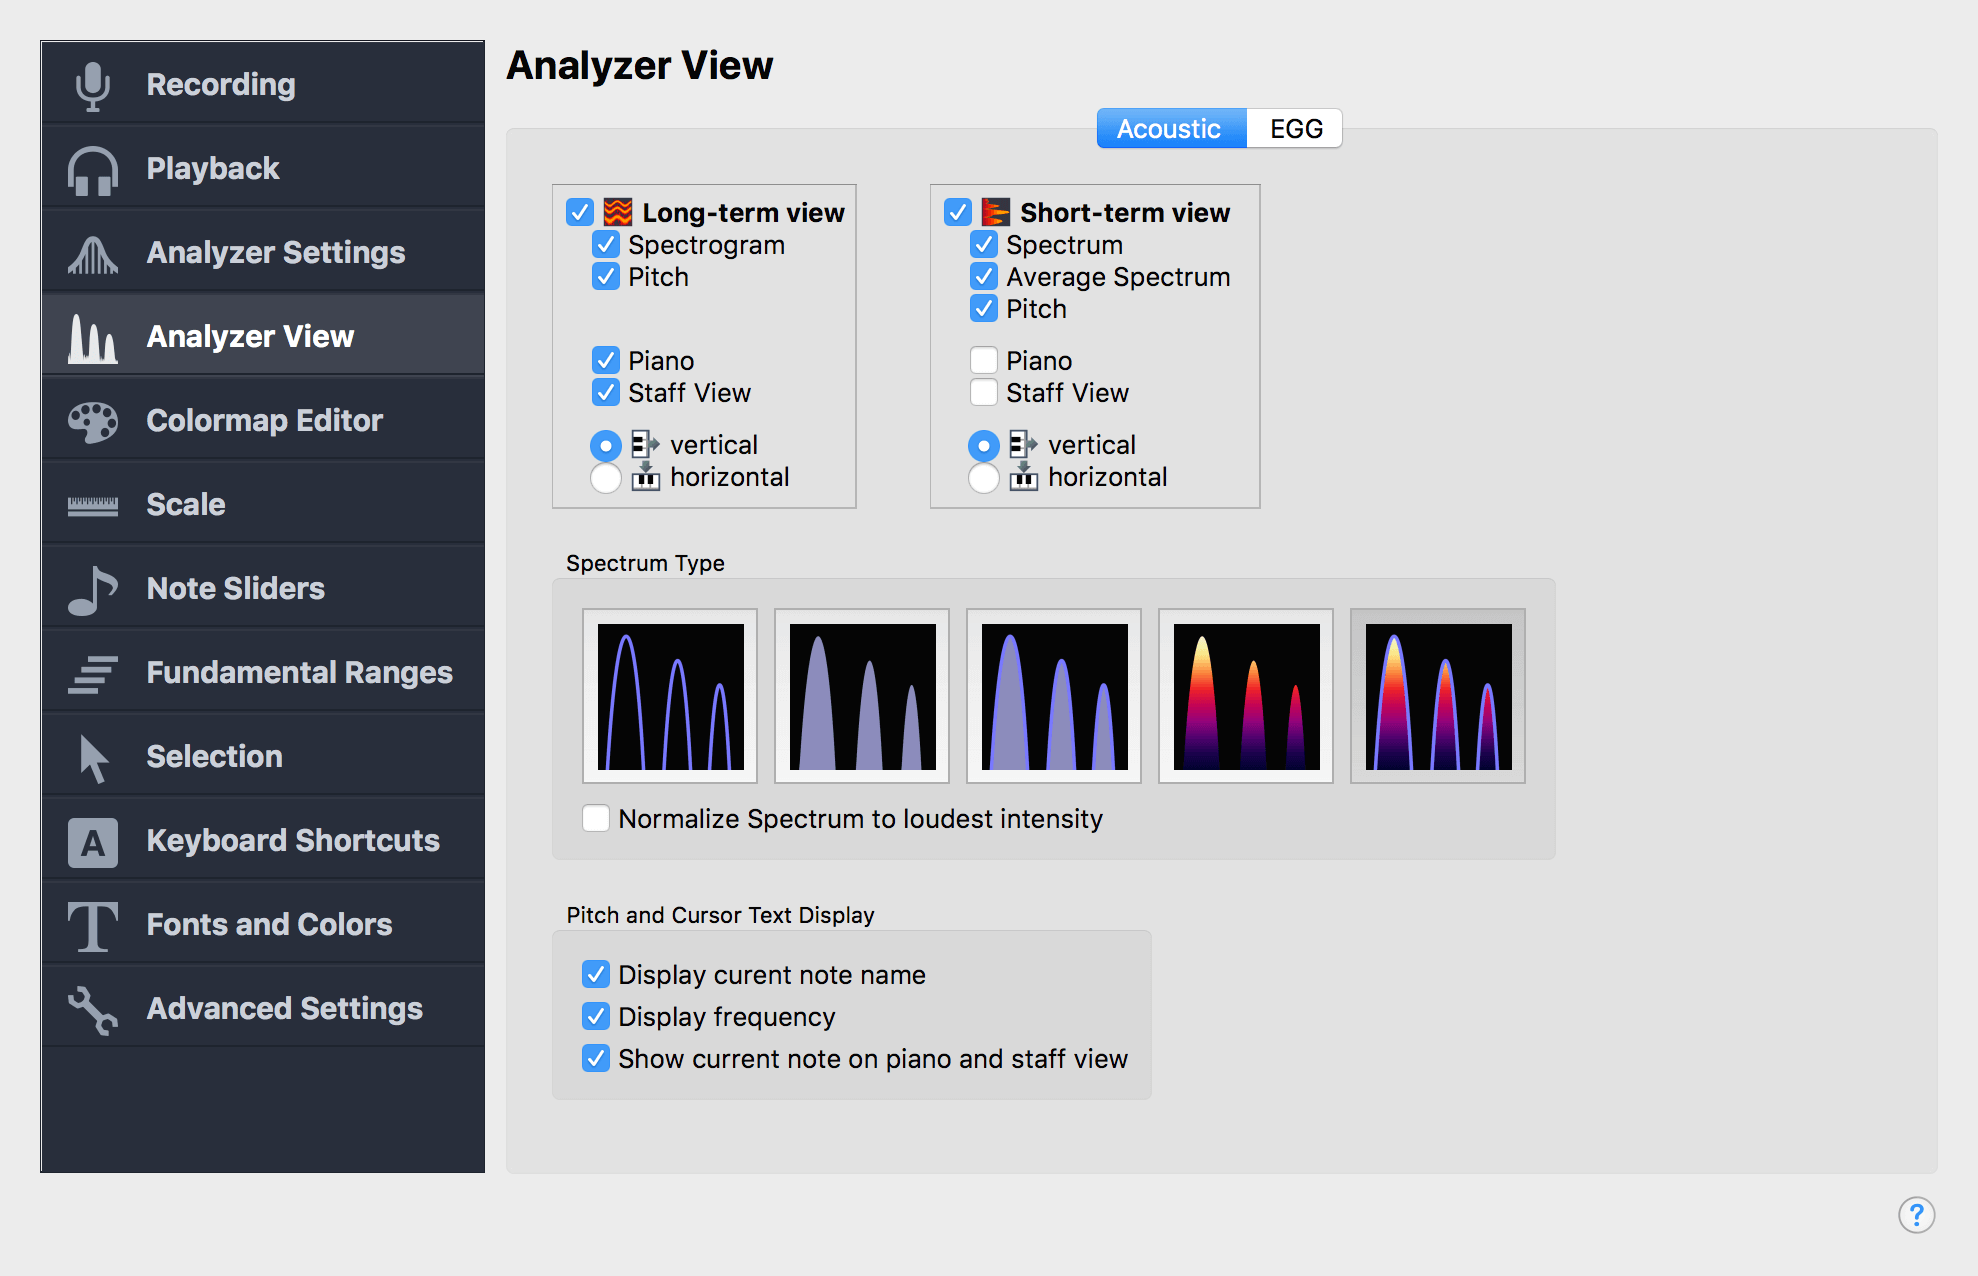 Acoustic Analyzer View